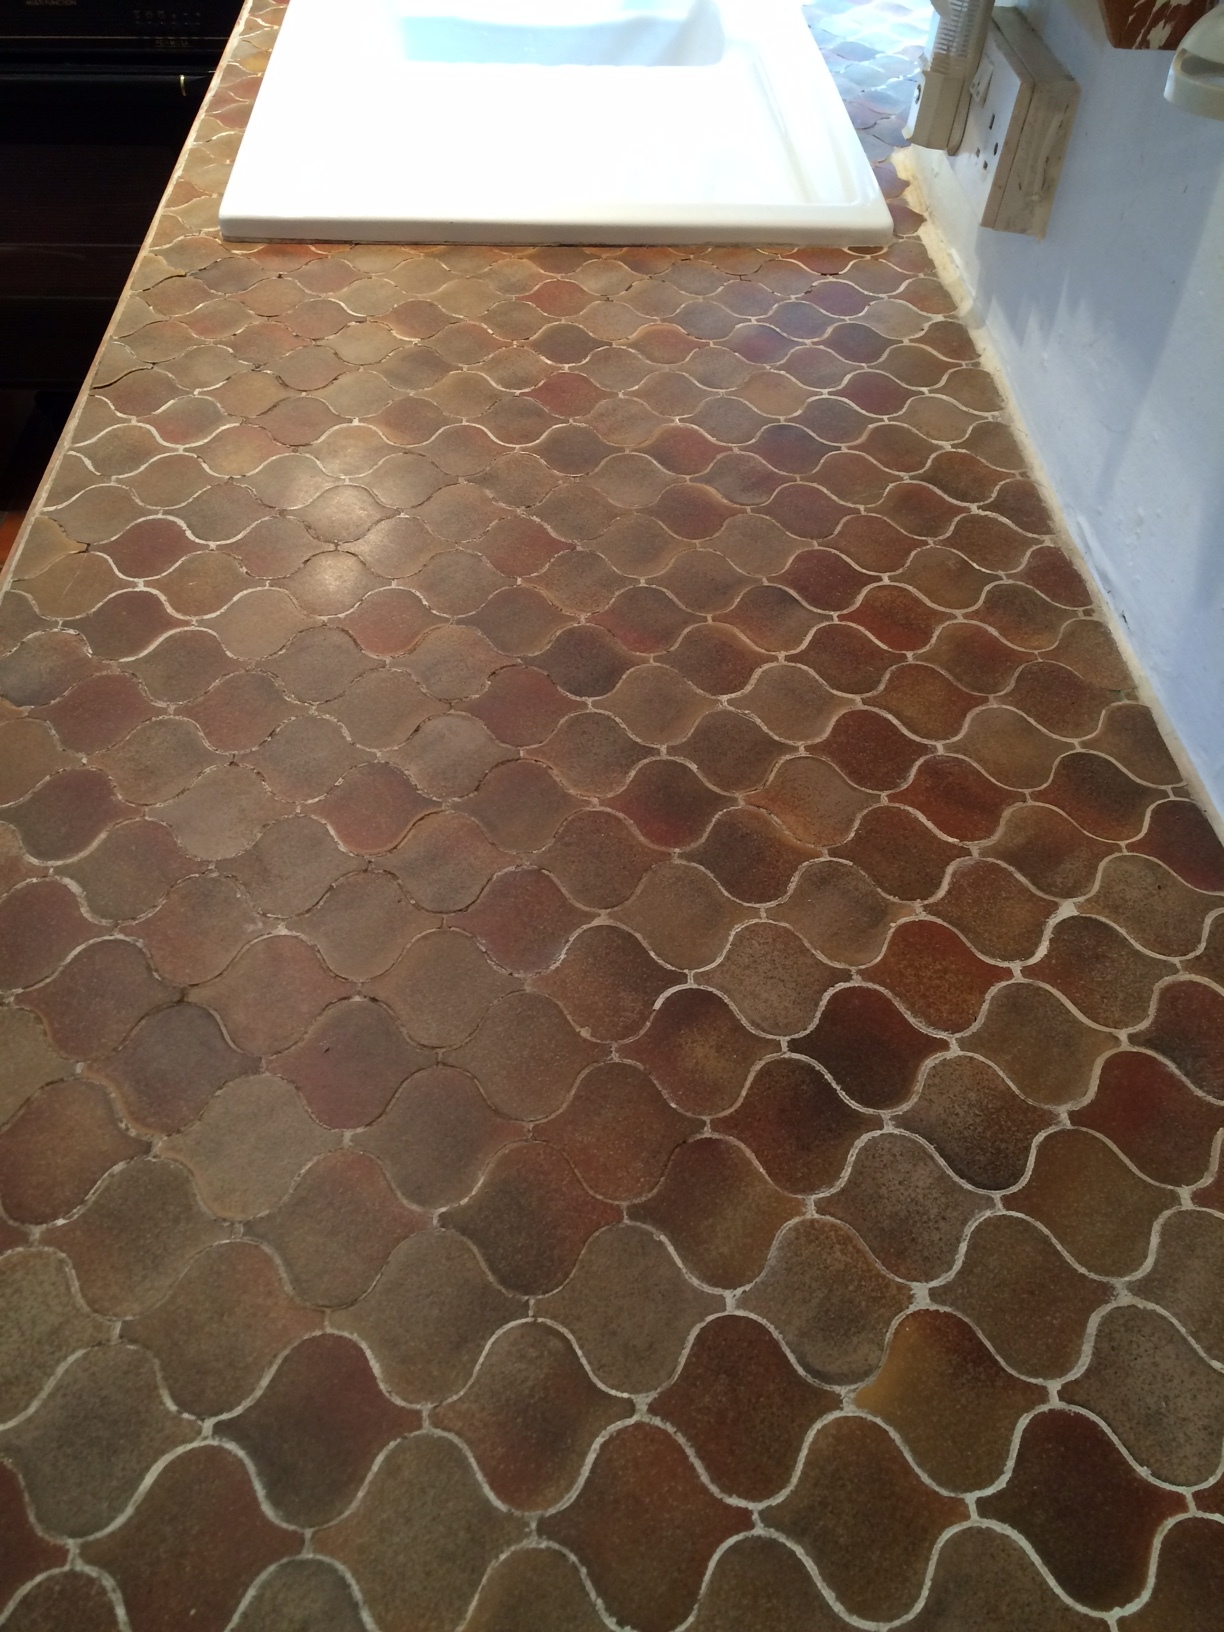 Grout Mosaic Tile Tile Cleaning Stone Cleaning And Polishing Tips For Worktops